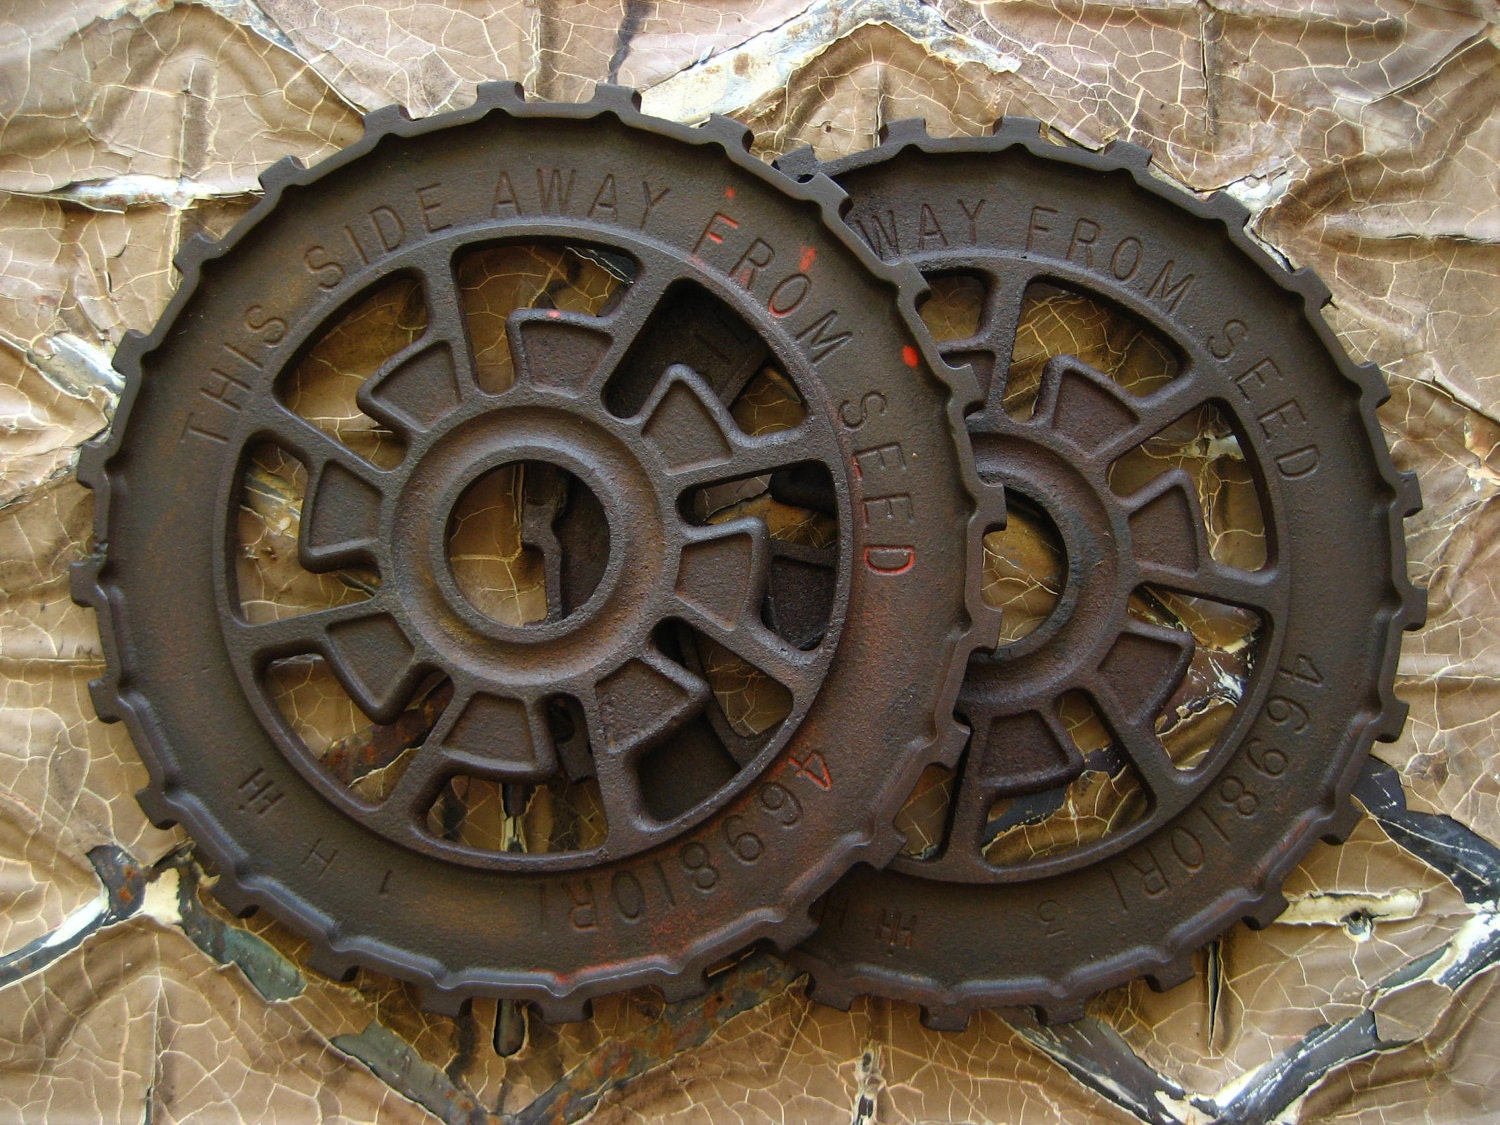 Antique Wheels And Gears : Vintage primitive cast iron gears antique industrial